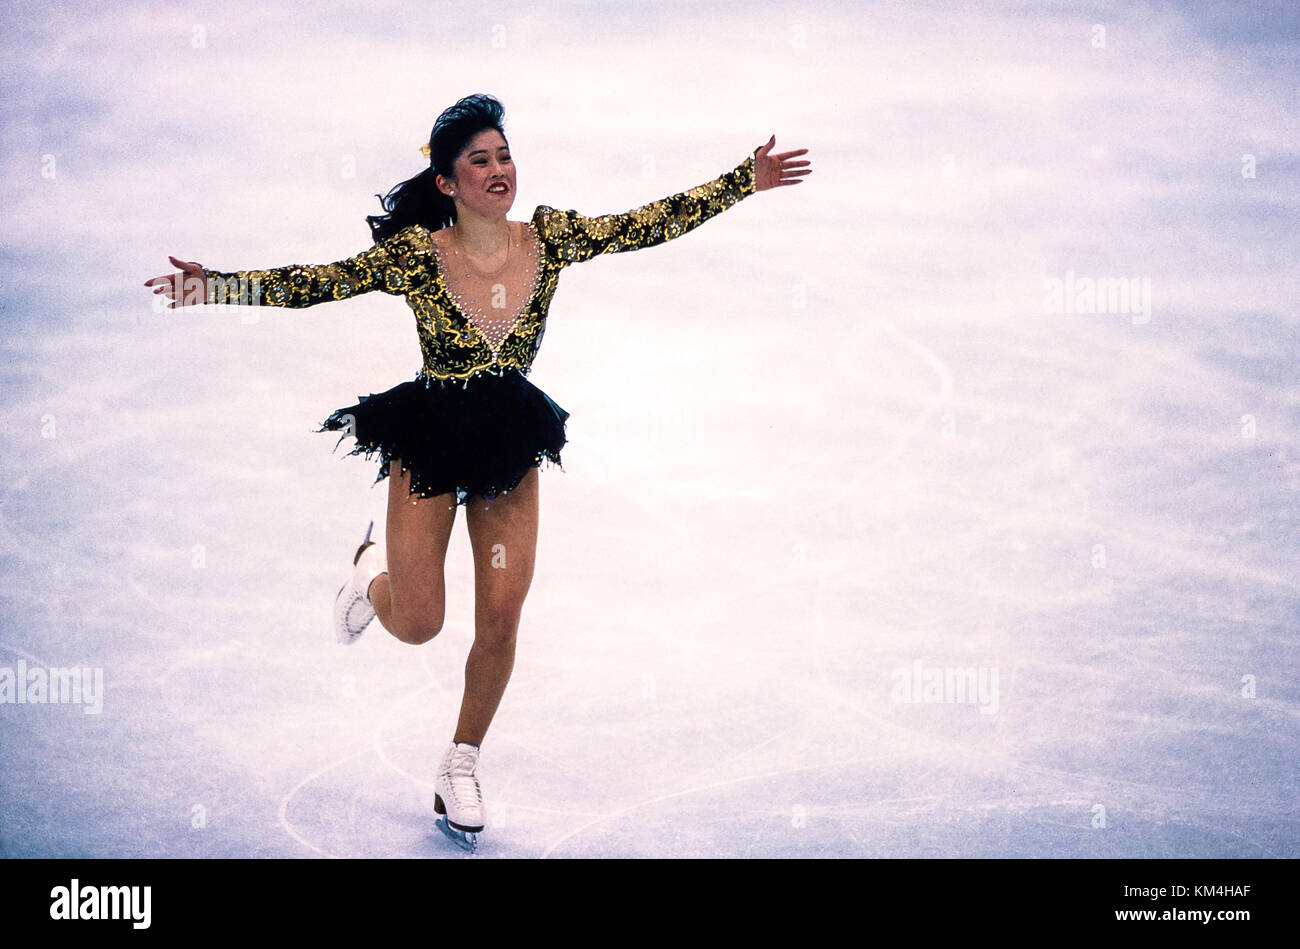 Kristi Yamaguchi (USA) competing at the 1992 Olympic Winter Games. - Stock Image